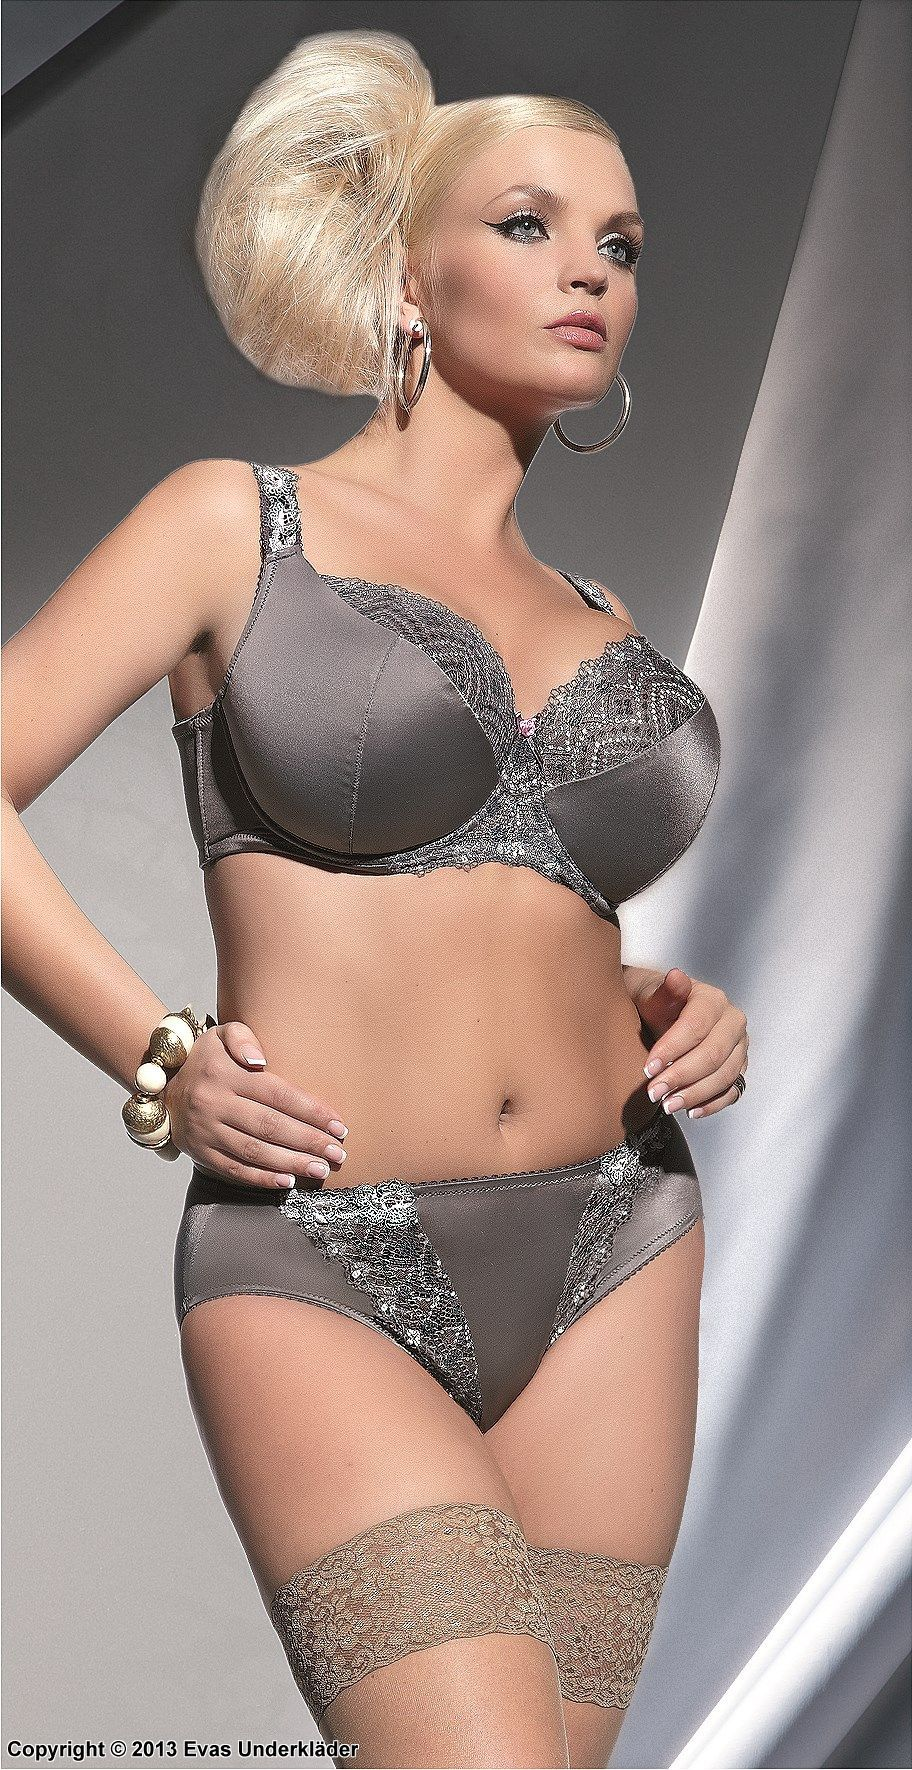 Pin On Group Lingerie Board-2777